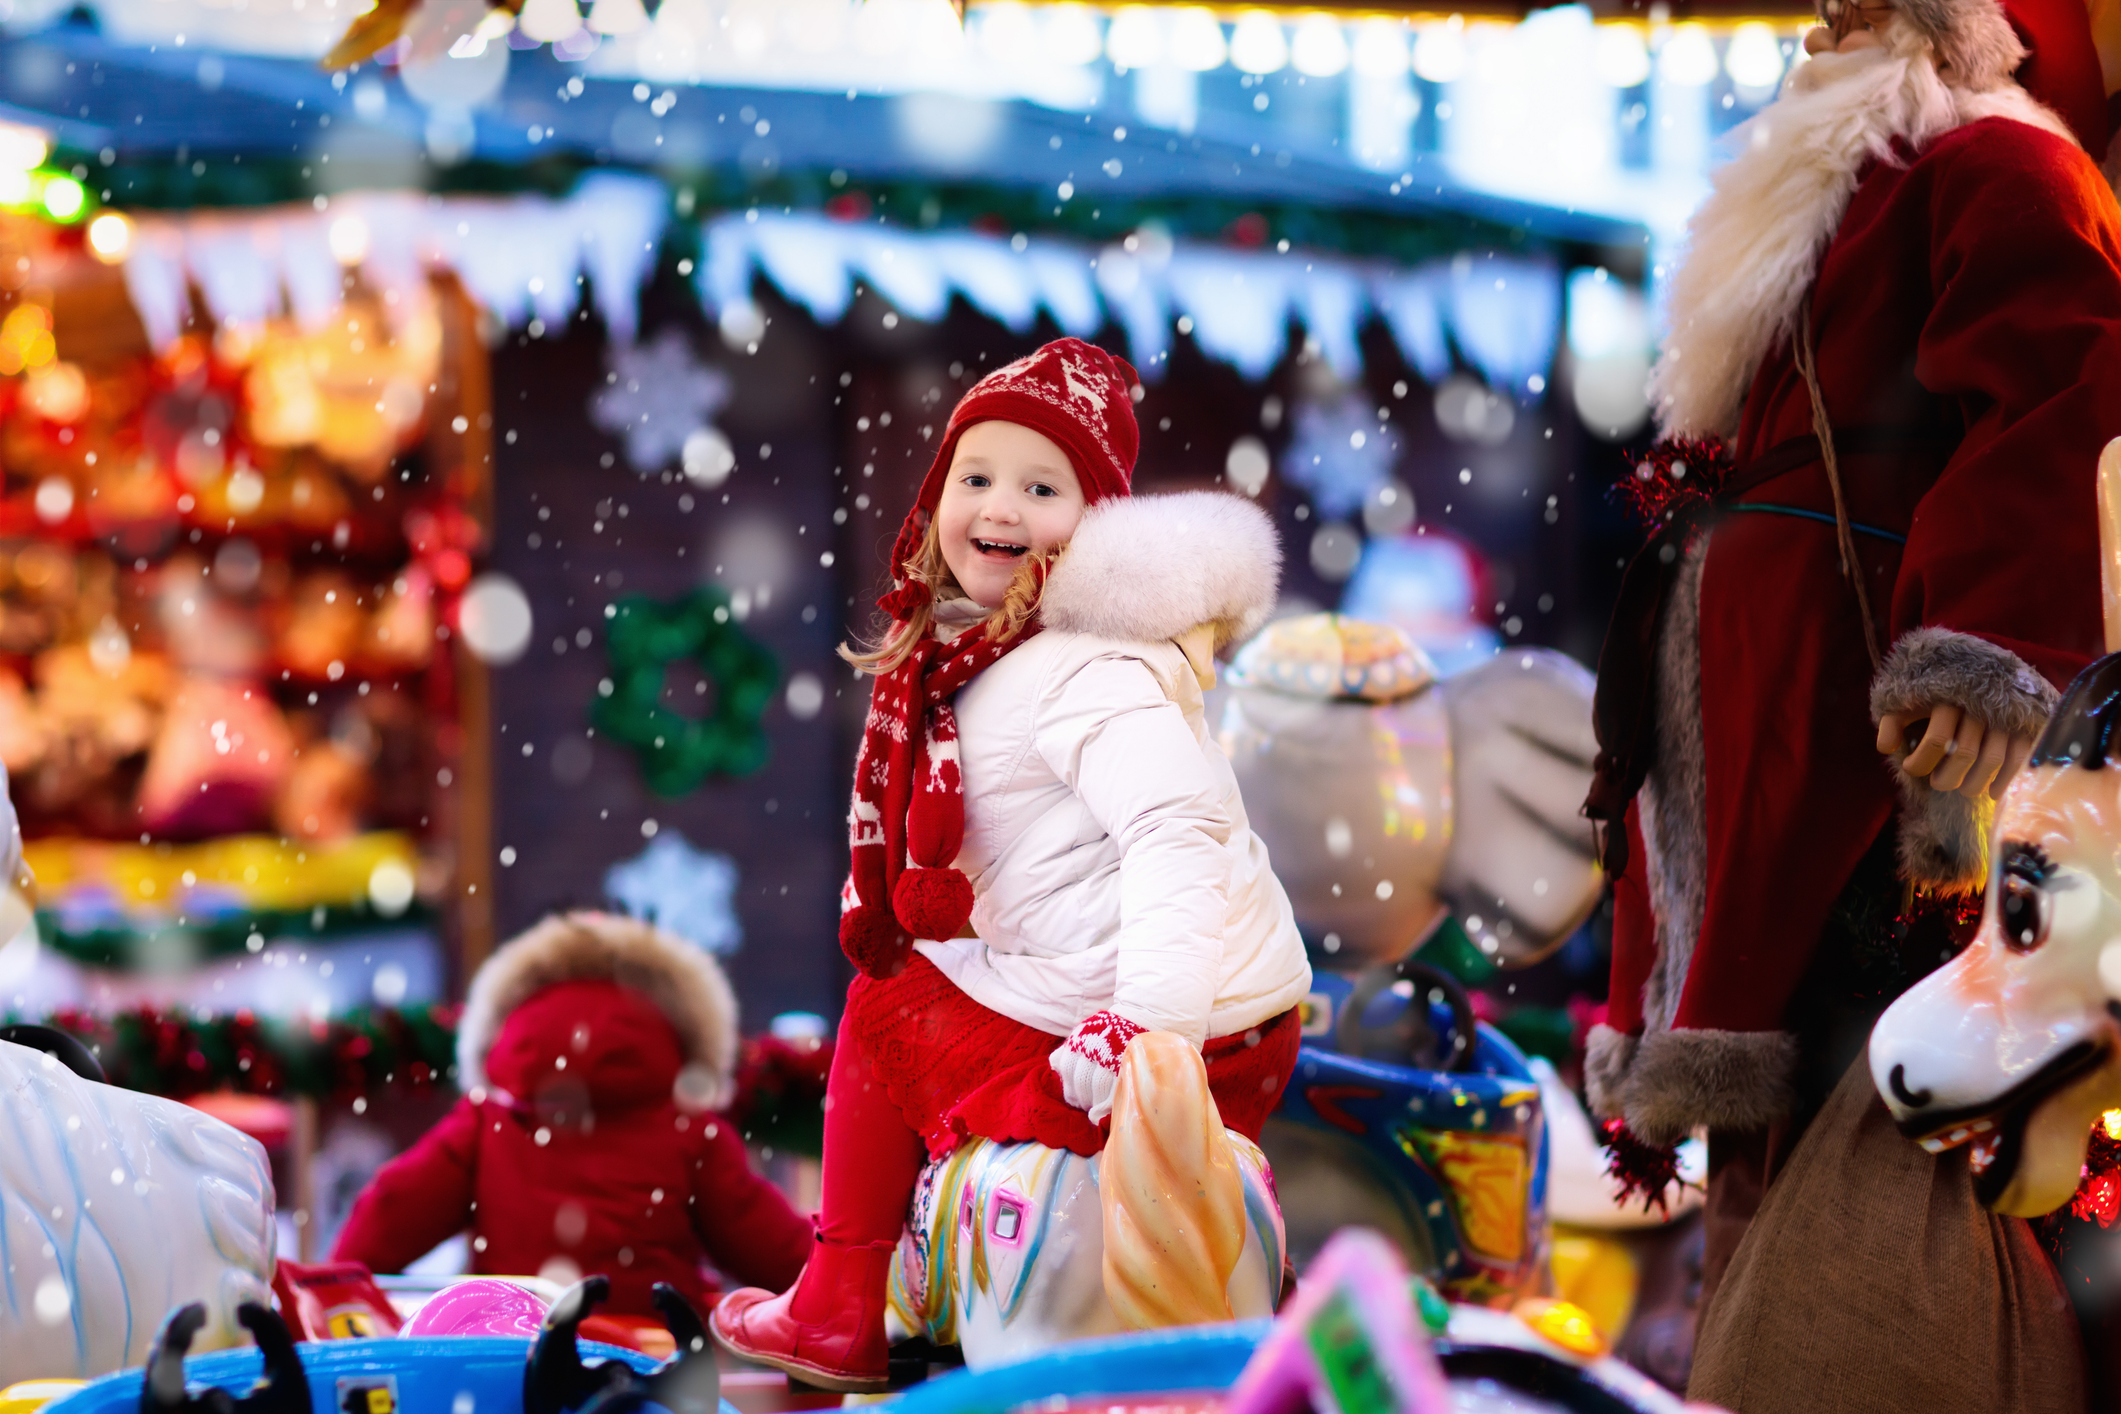 Check out all the area has to offer for holiday fun this weekend!